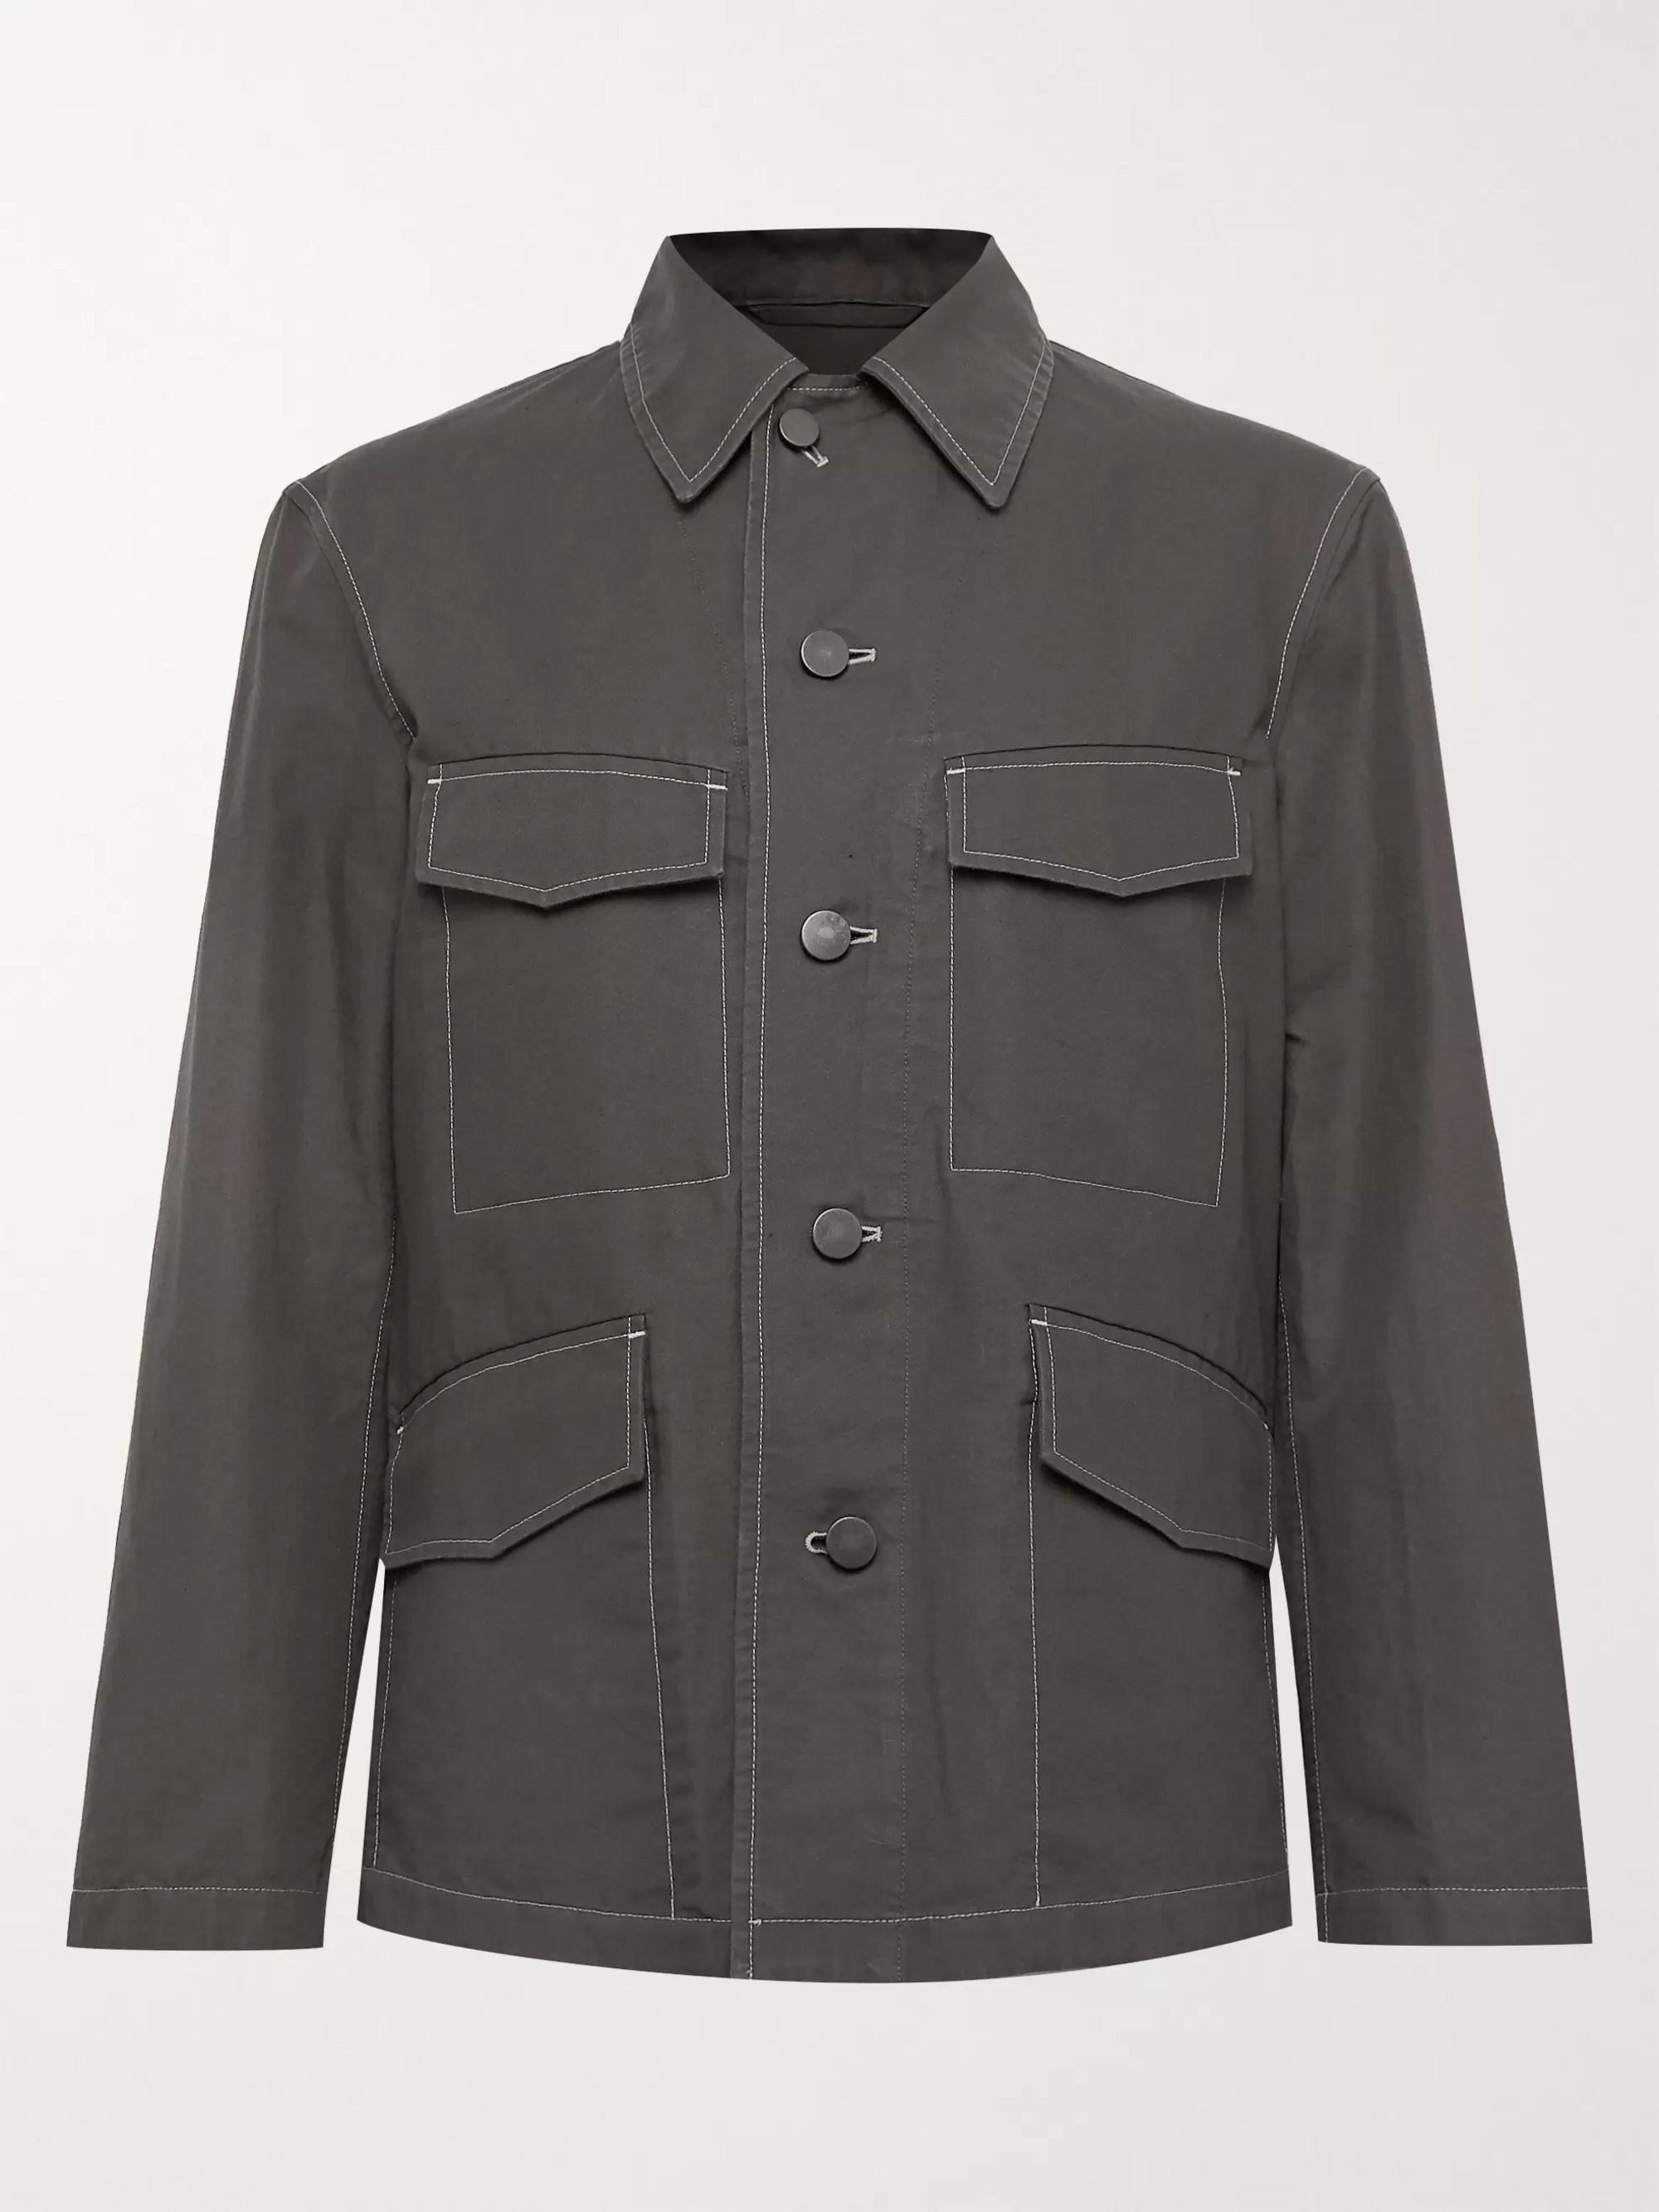 Lemaire Cotton and Linen-Blend Canvas Field Jacket